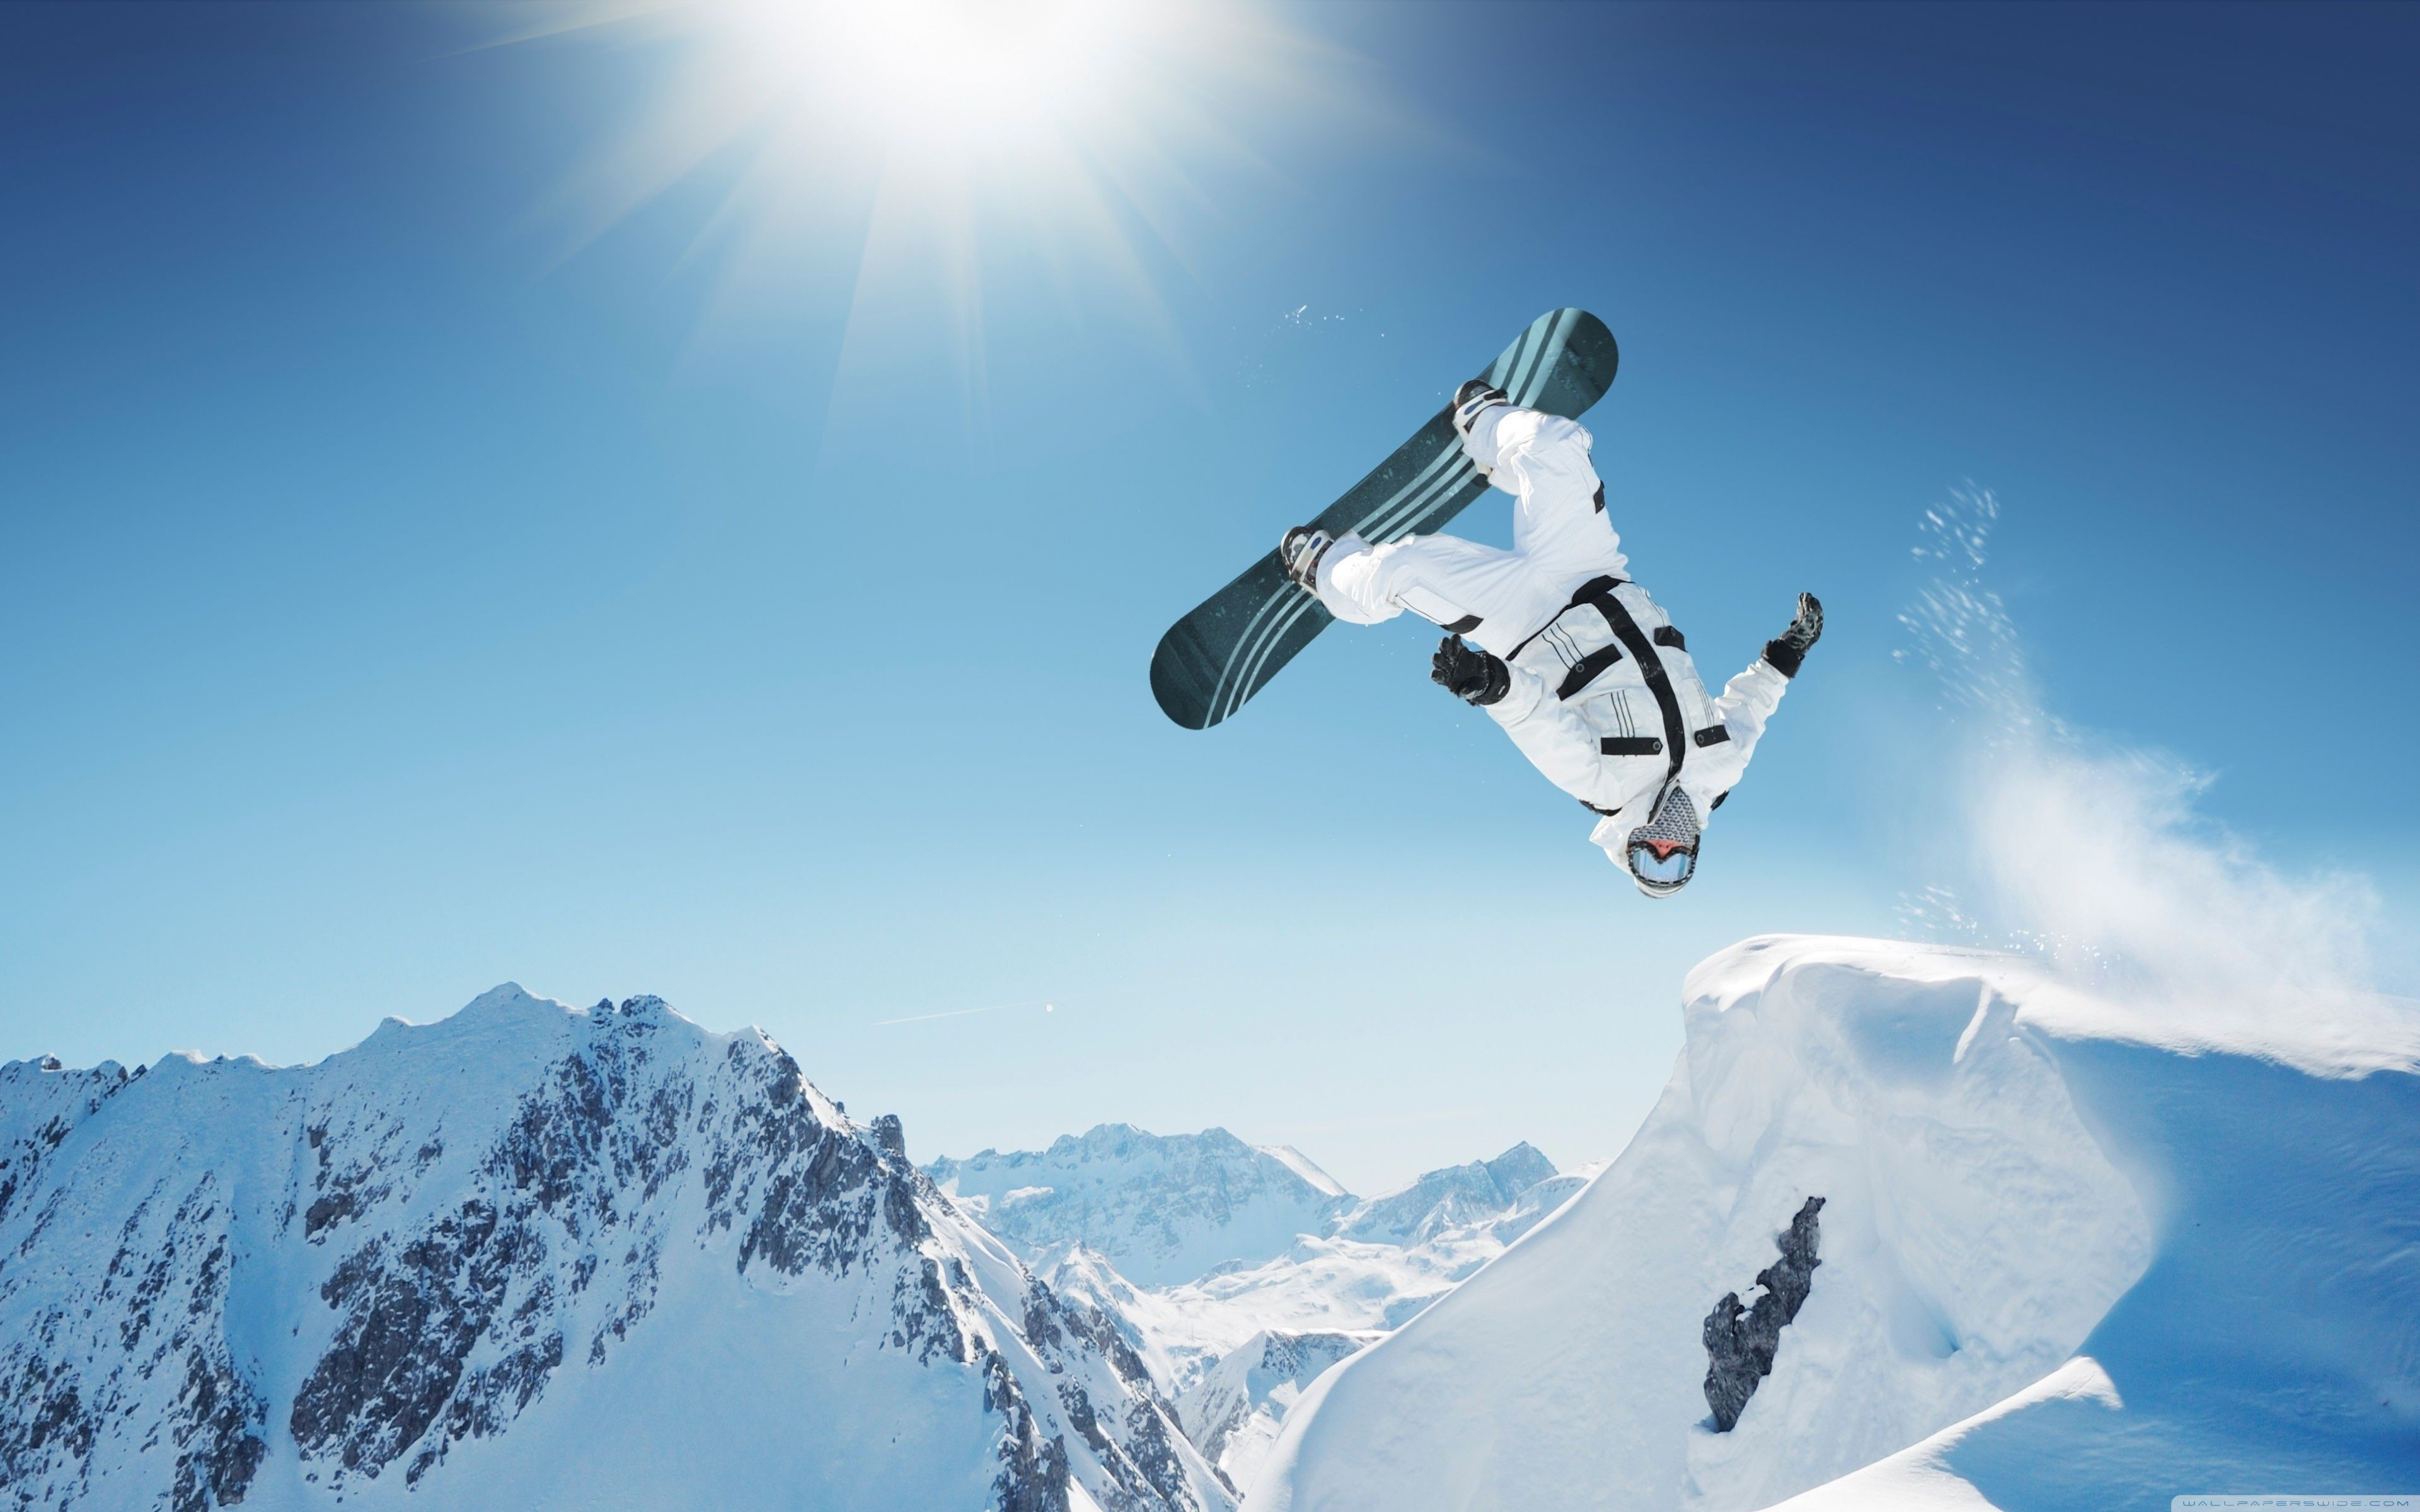 guy on snowboard